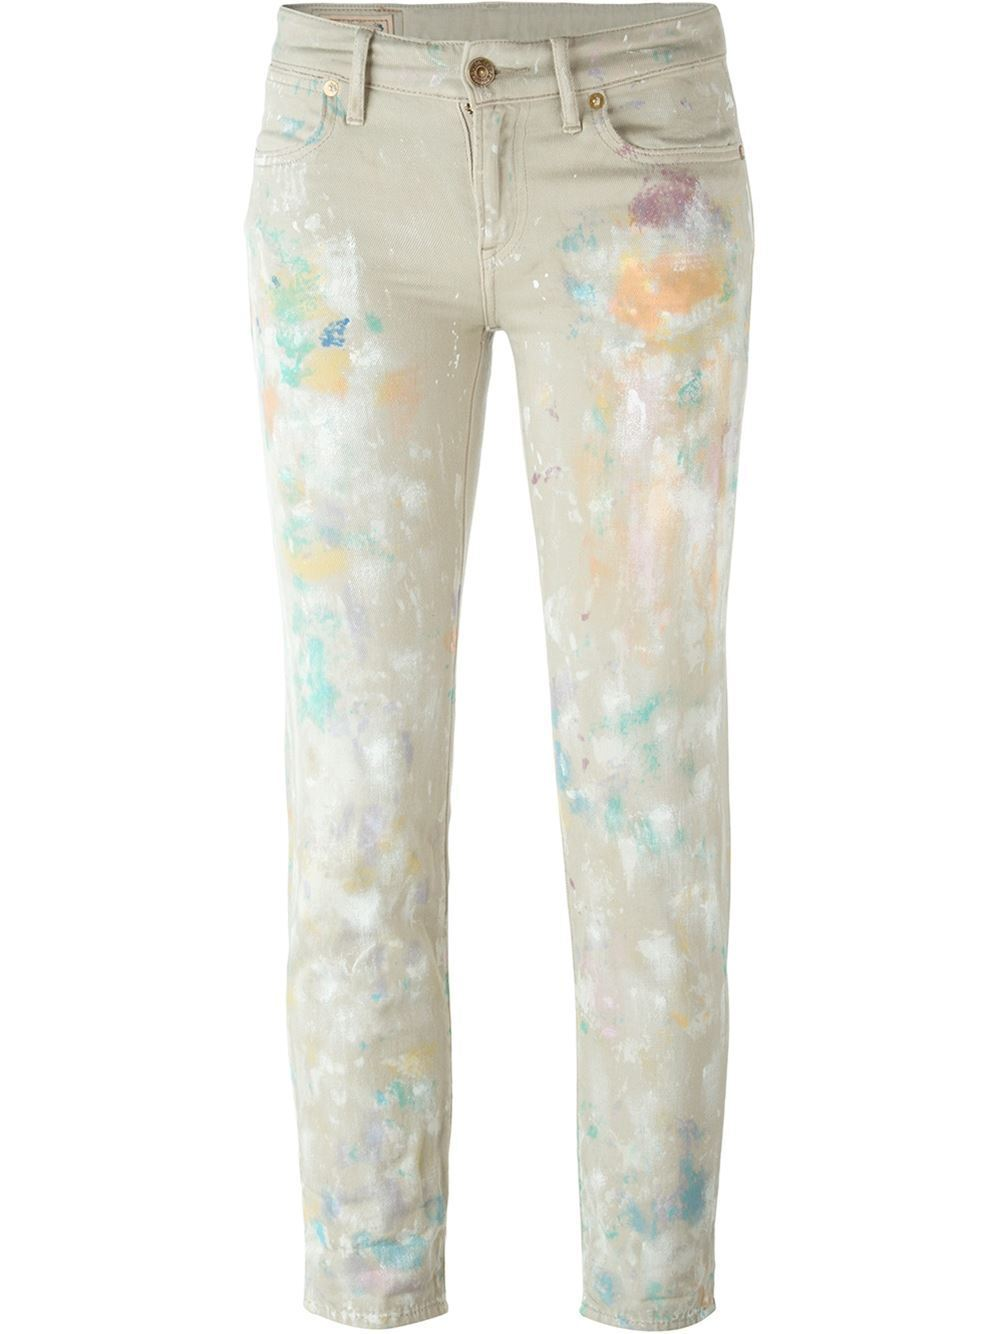 OTS Womens Splash Jogger Pants